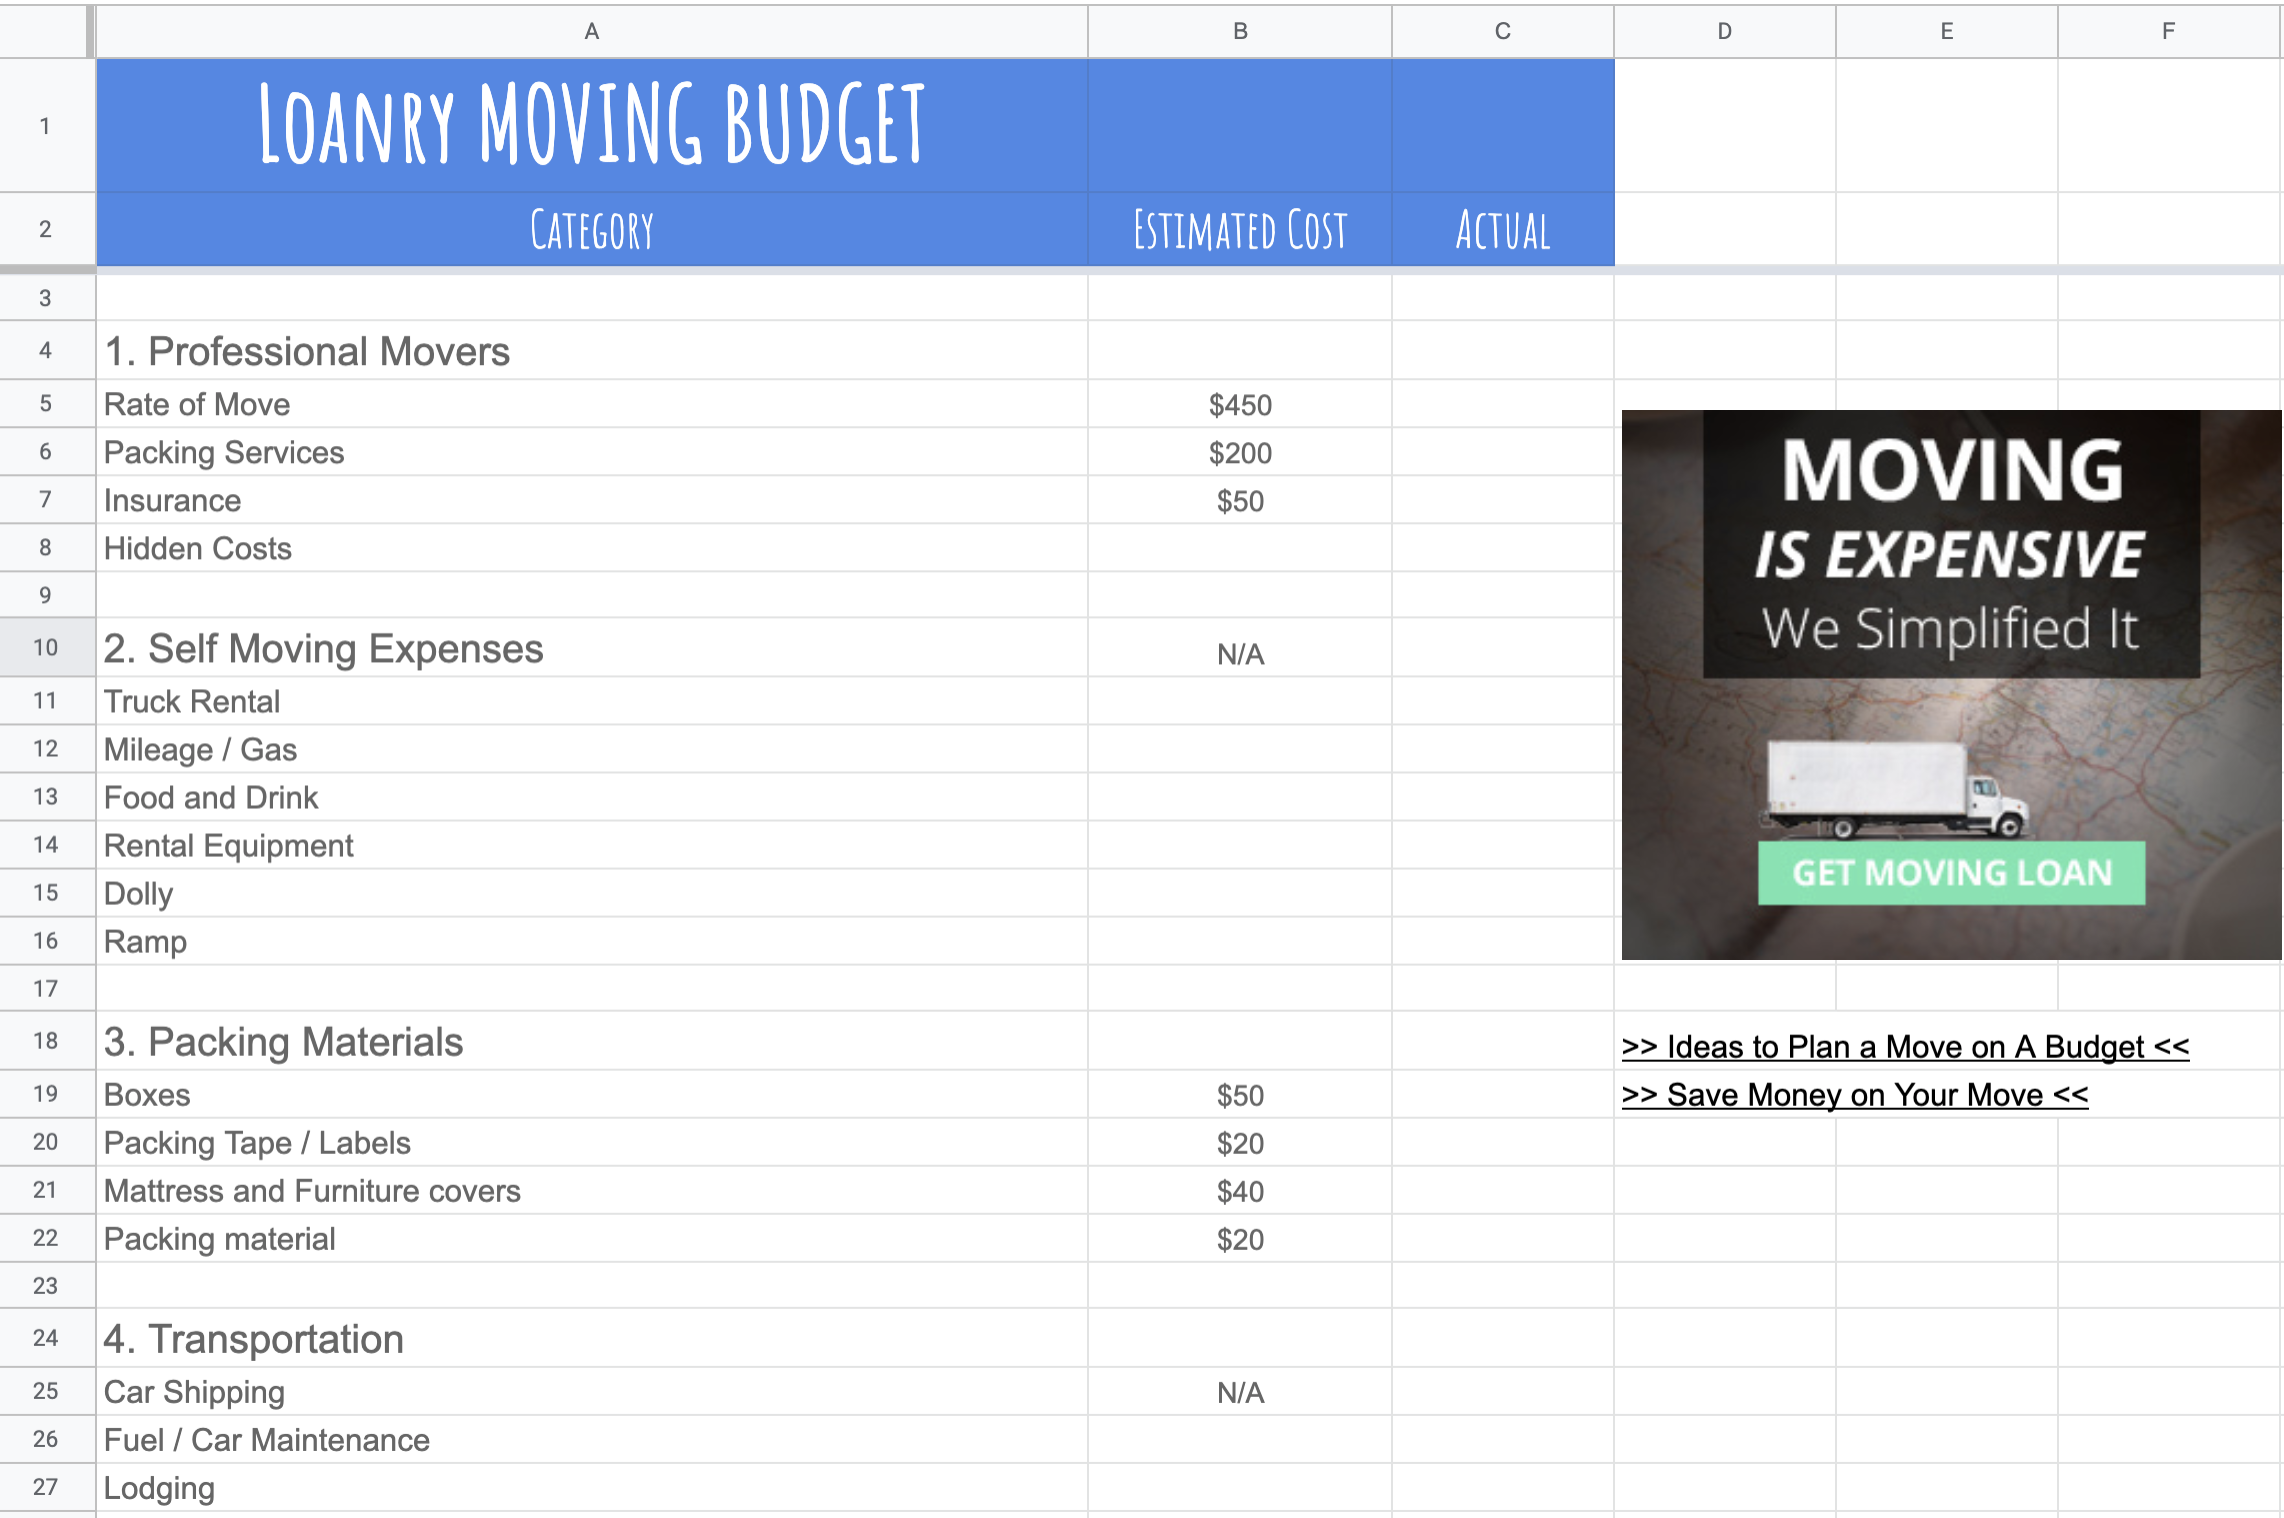 Loanry Moving Budget Free Template